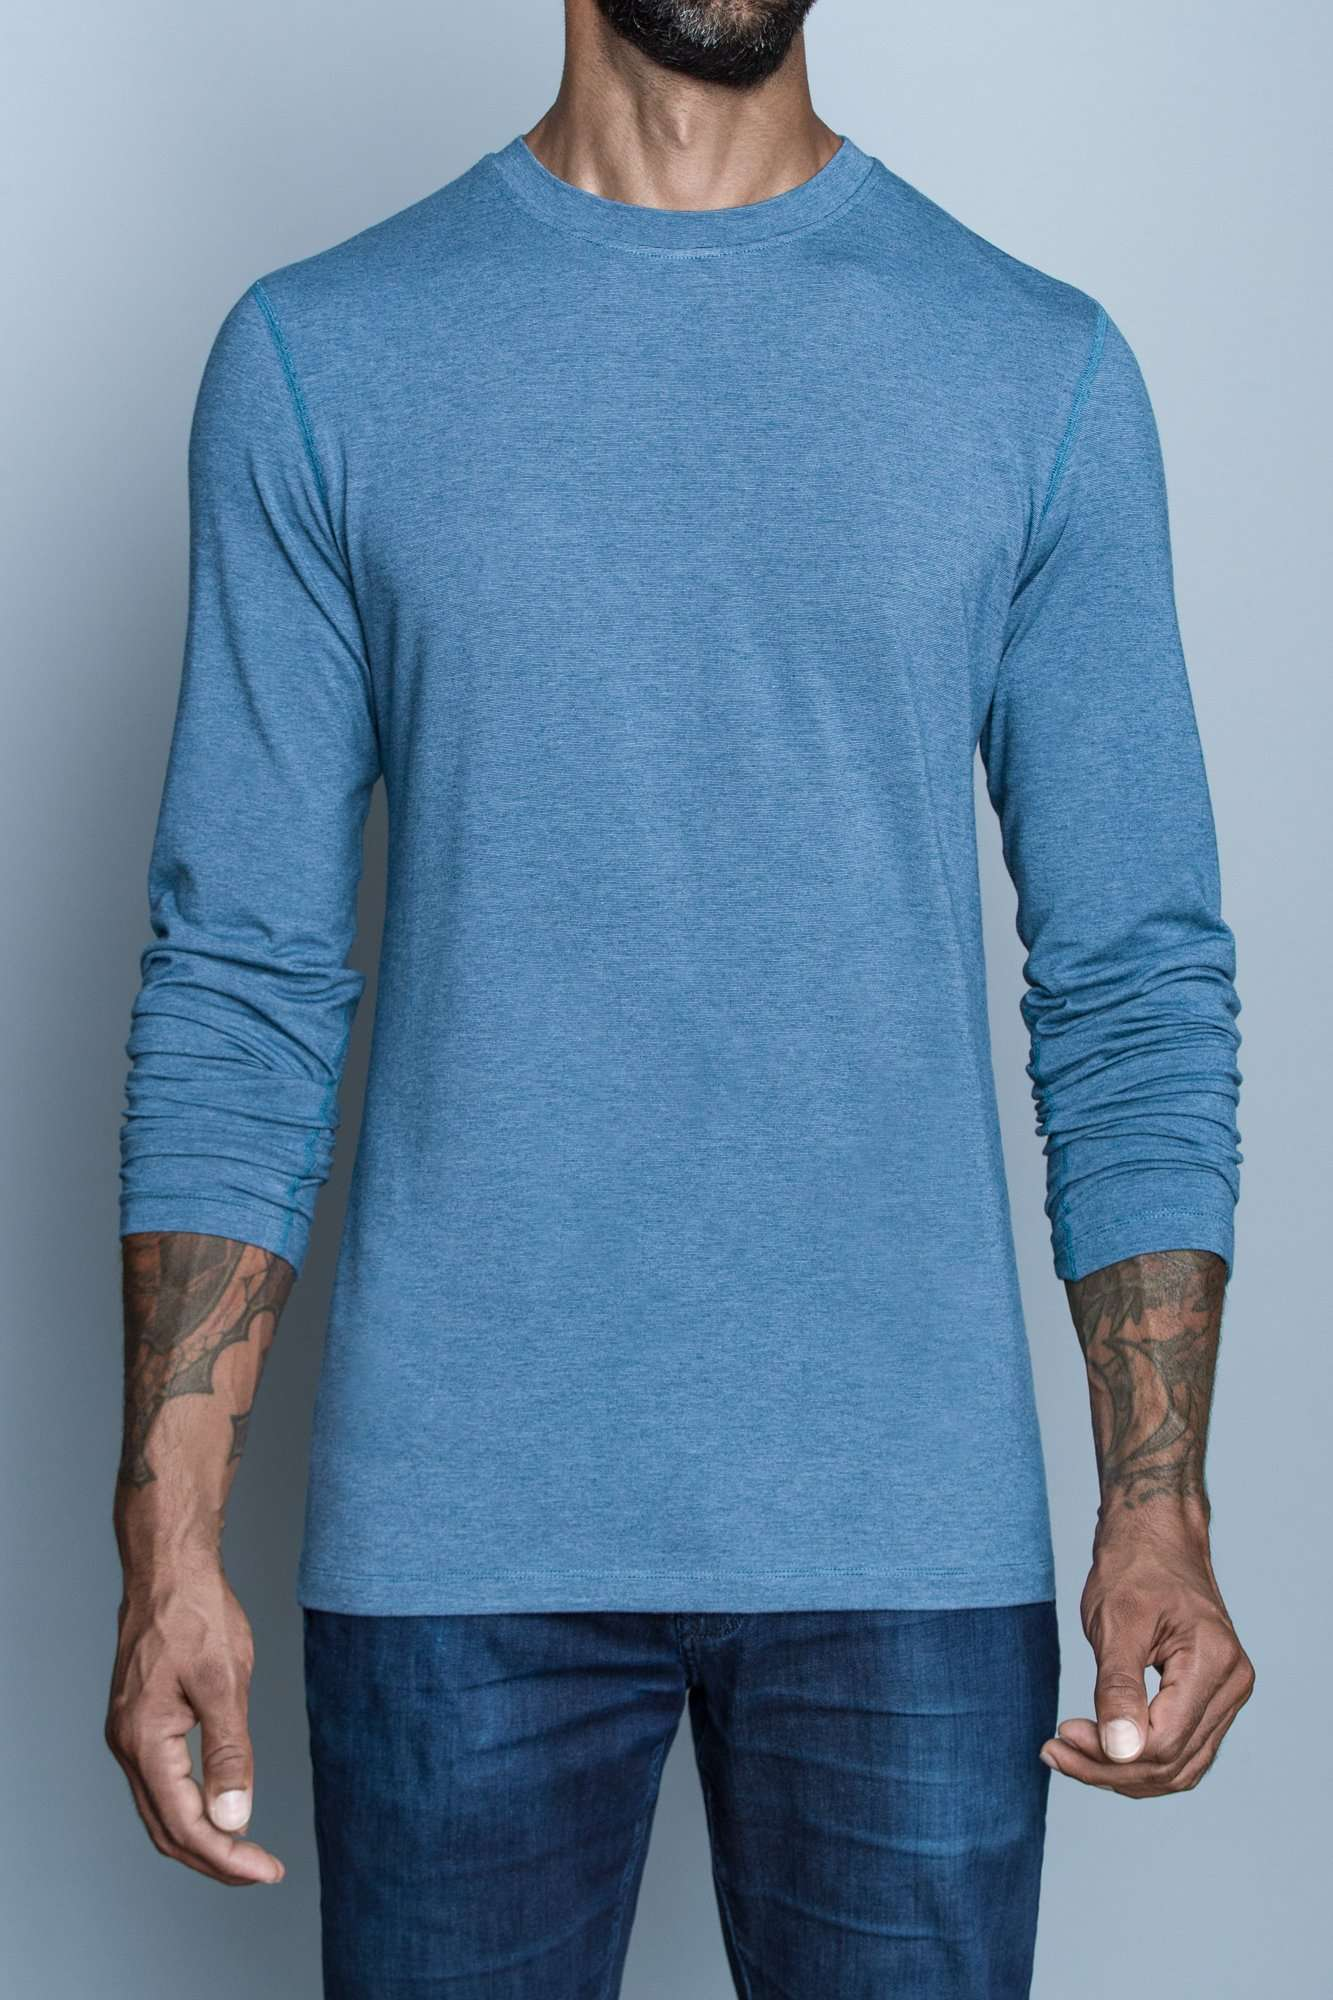 Mac Microstripe | Long-Sleeve Tall Shirt